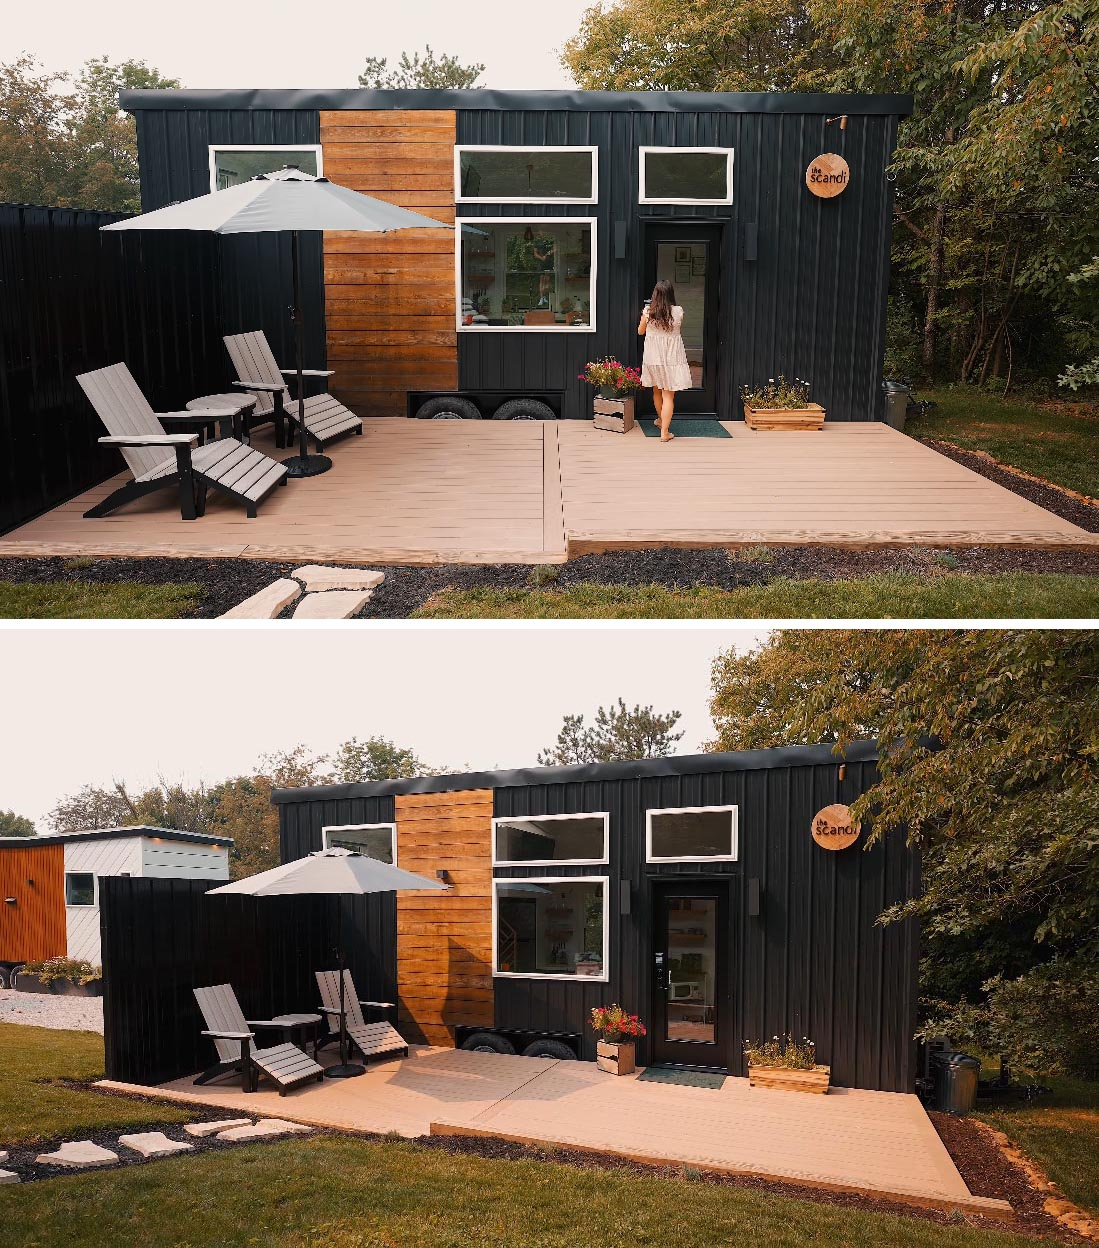 The exterior of this Scandinavian-inspired tiny home includes a black metal and wood exterior, and a deck with a privacy wall.